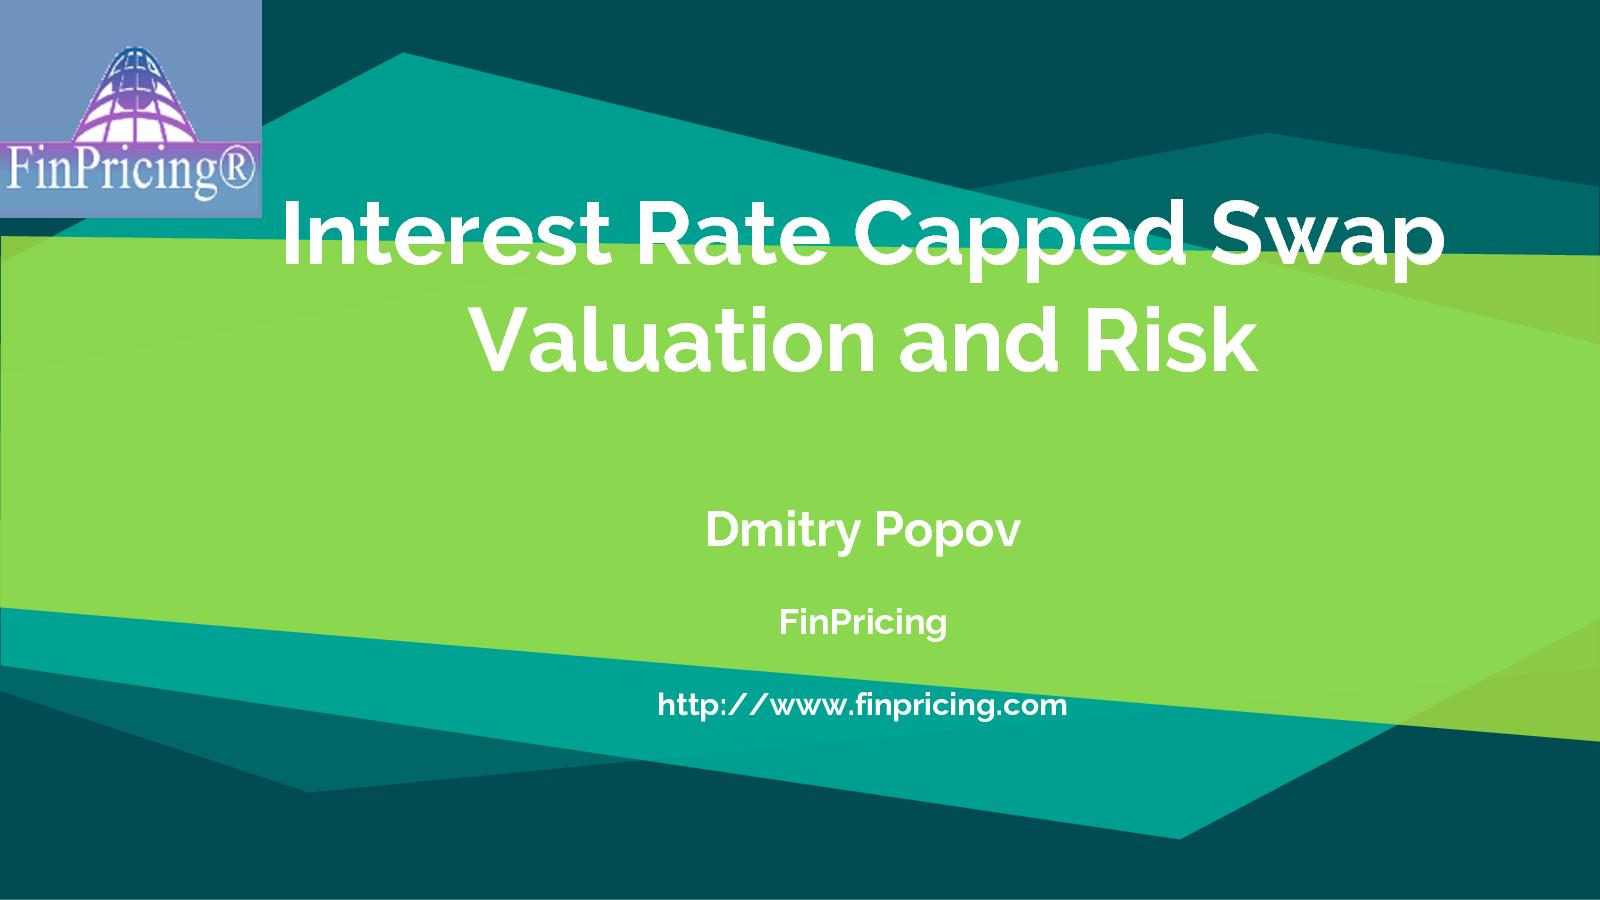 Calaméo - Interest Rate Capped Swap Definition and Valuation 49ded7f3d47